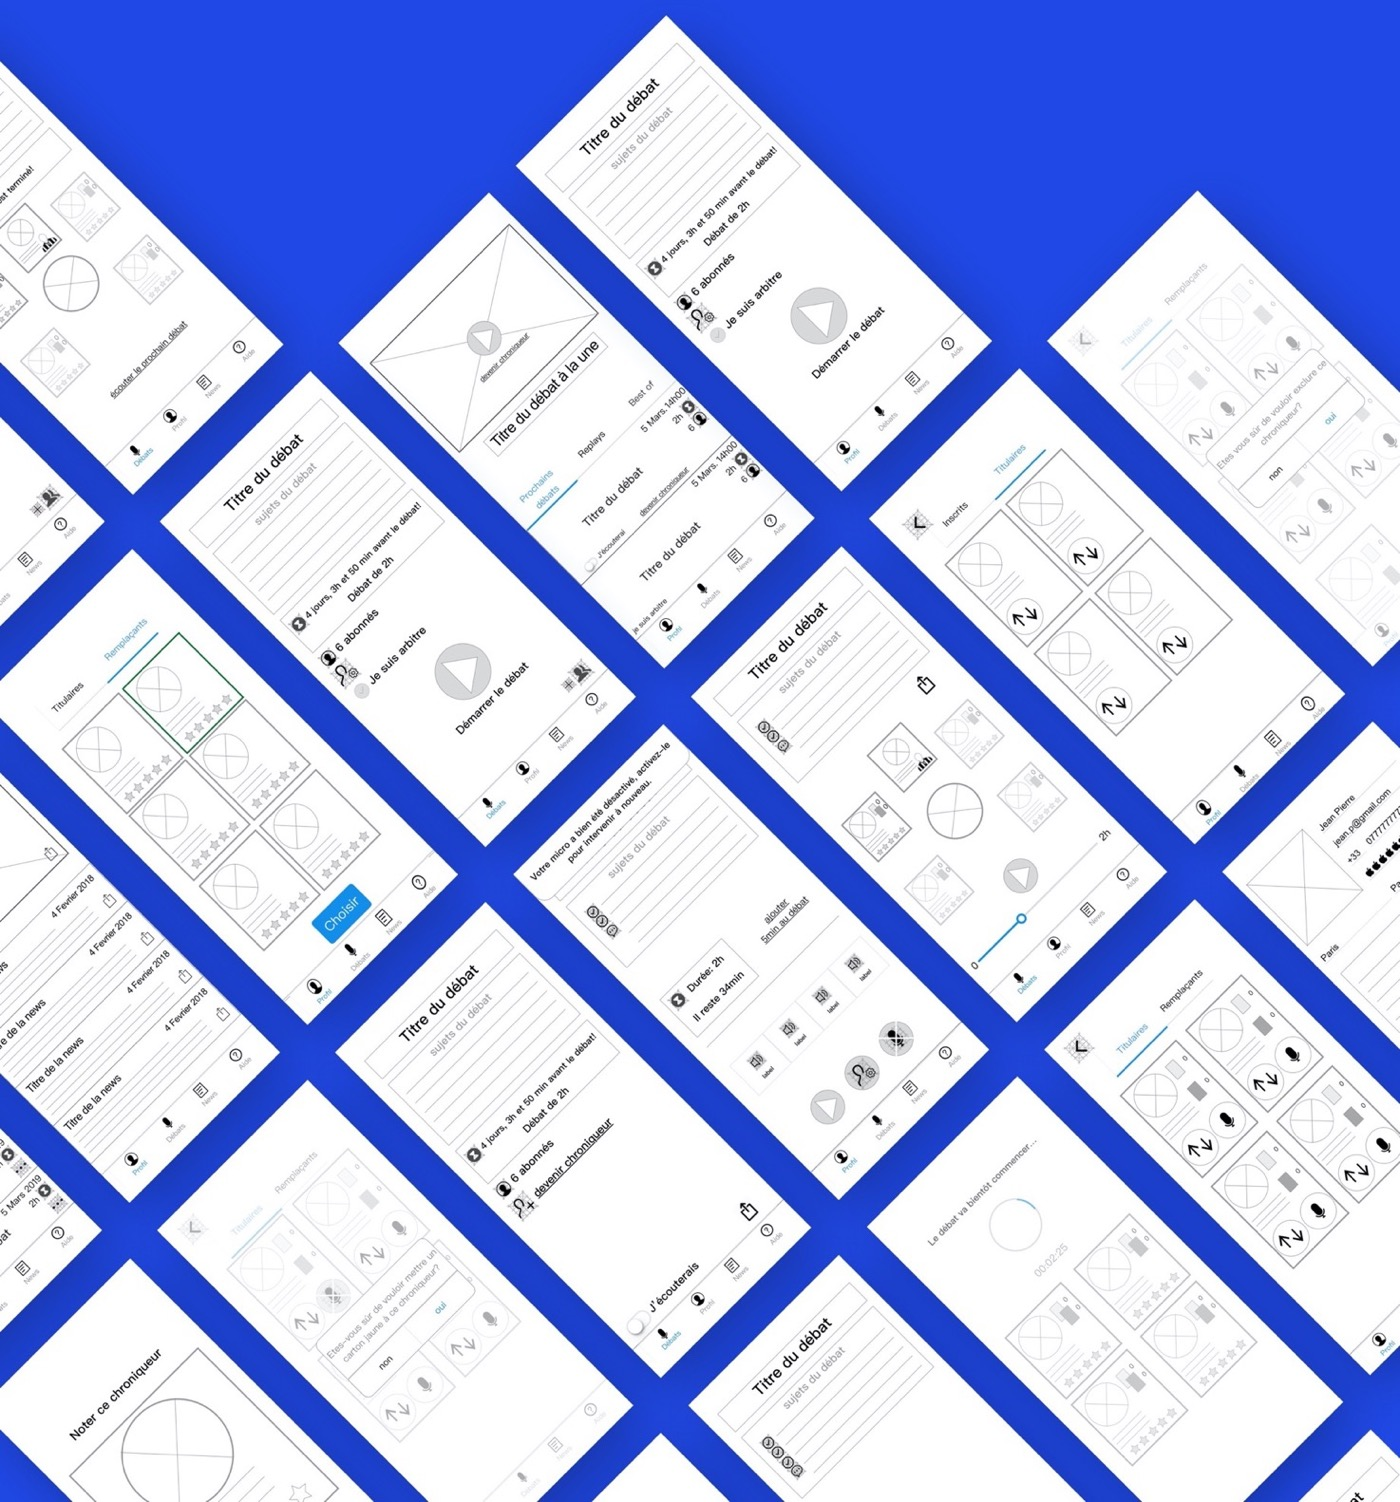 image showing some wireframes designed for the Blablafoot app